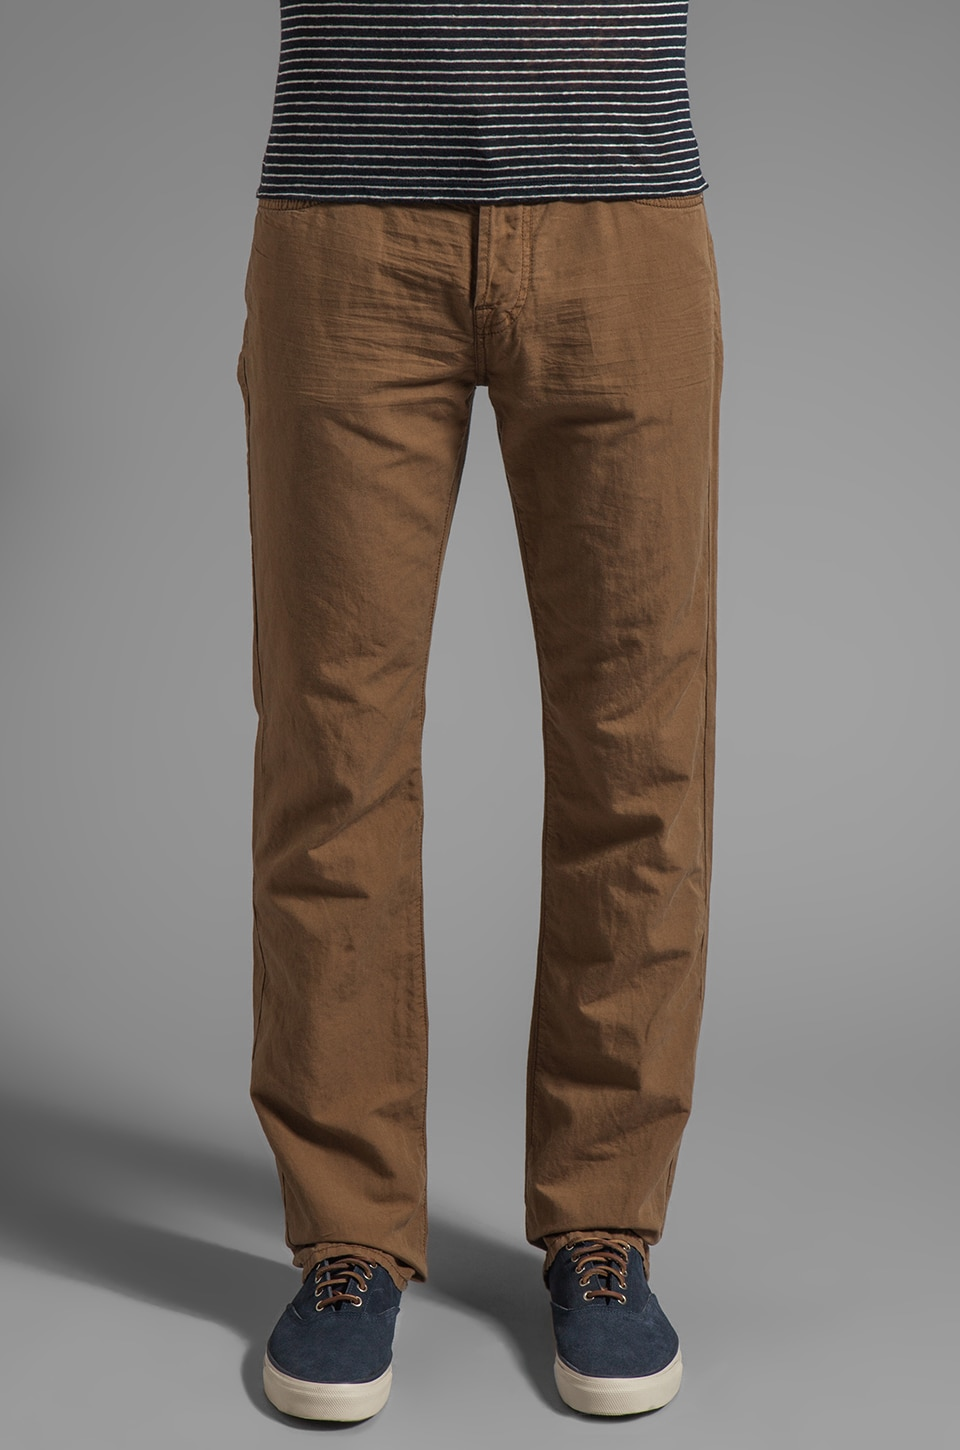 7 For All Mankind Summer Linen Pant in Tobacco